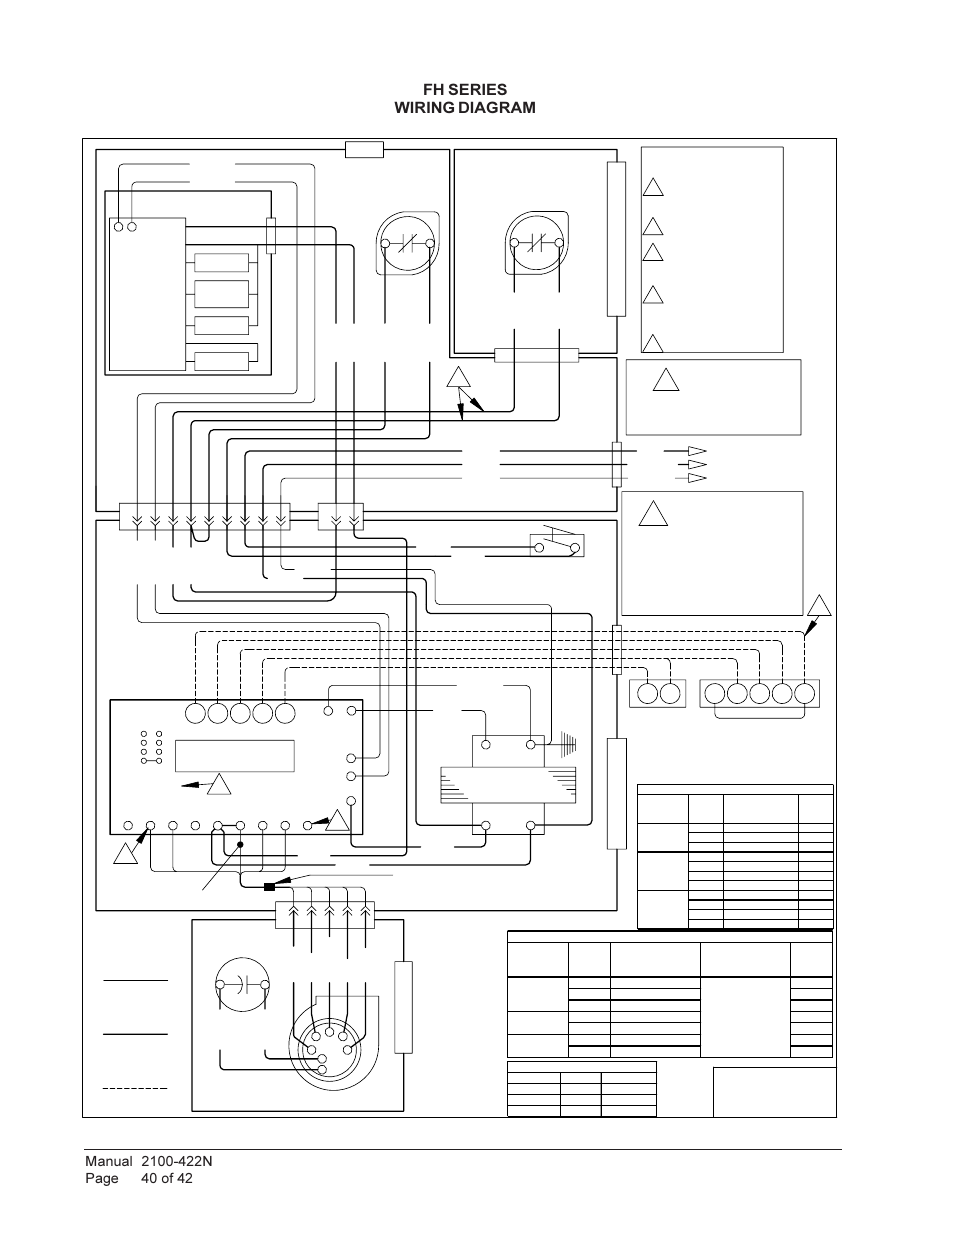 bard-oil-furnace-flf085d36f-page40  Wire Oil Diagram on receptacle diagram, 3 wall diagram, single pole diagram, 3 speed switch wiring diagram, grounding diagram, 3-way lamp wiring diagram, fuse diagram, big bear 400 wiring diagram, meter socket diagram, house wiring 3-way switch diagram, 3-way electrical connection diagram, three switch wiring diagram, light switch wiring diagram, 220 3 phase wiring diagram, single phase diagram, 3 light diagram, towing wiring diagram, easy 3 way switch diagram, 3 line diagram,